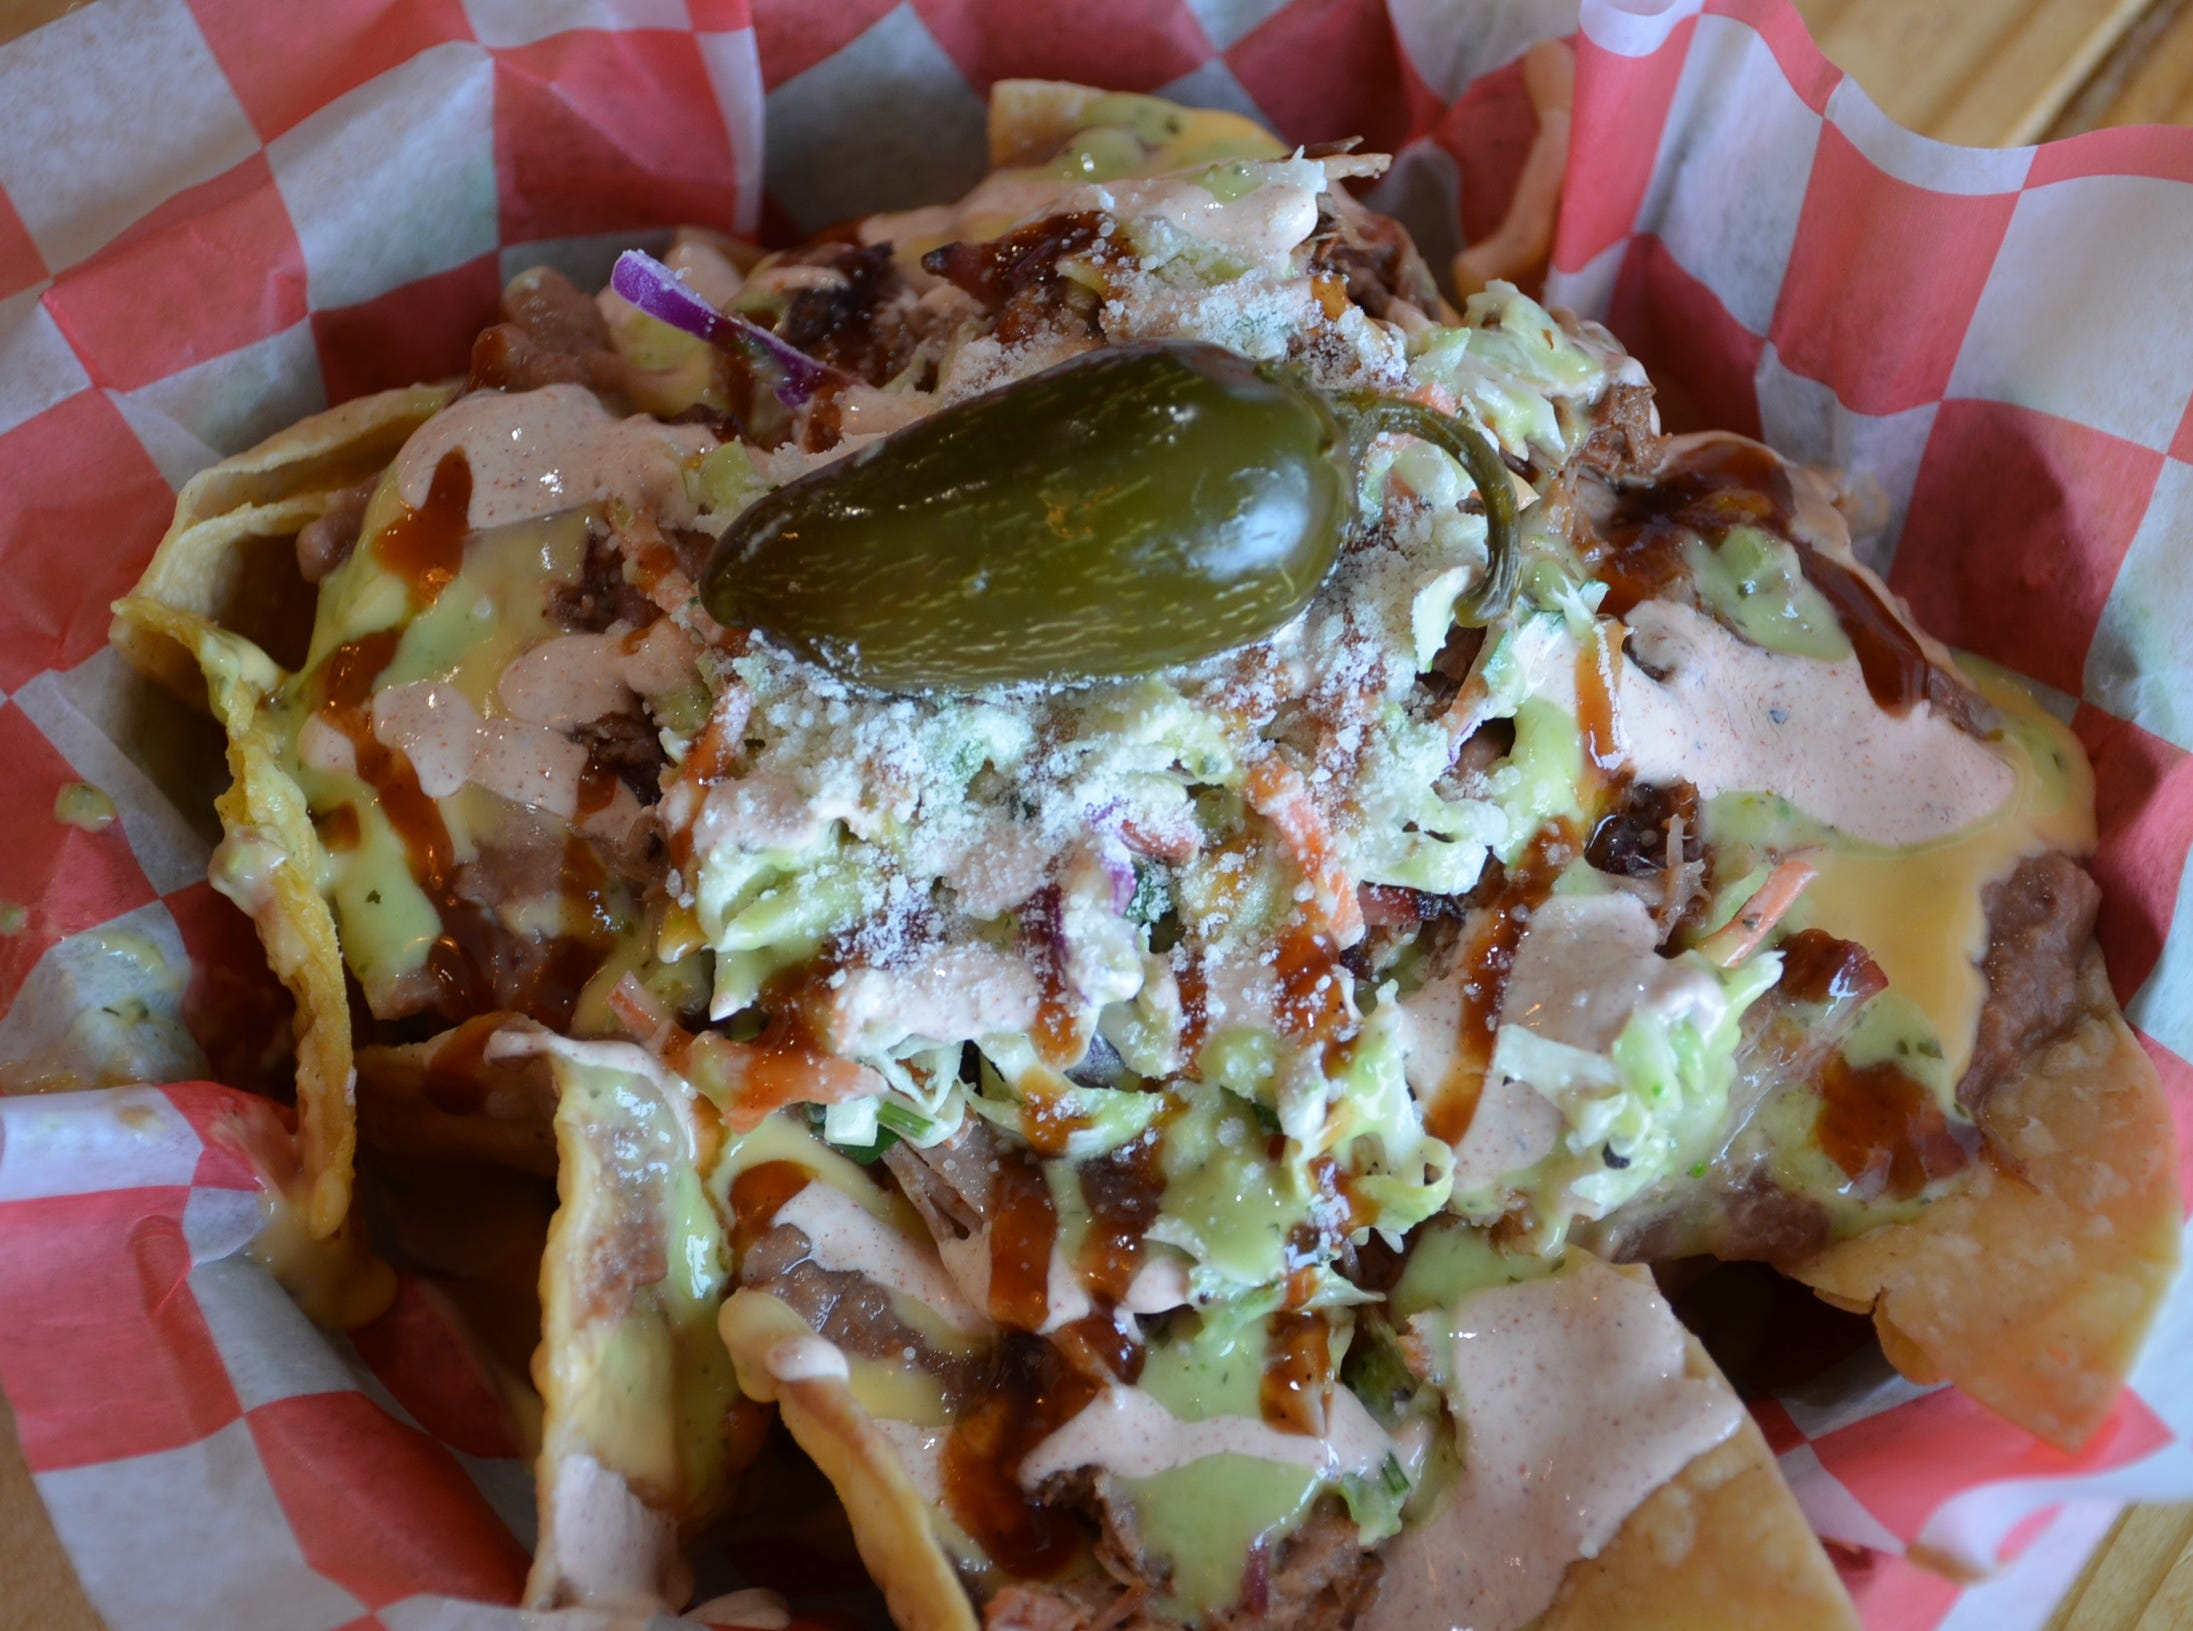 Nachos at The Meat Sweats BBQ includes smoked pulled pork, pico cole slaw, beans, nacho cheese, salsa, Mexican cotija cheese and a jalapeno.